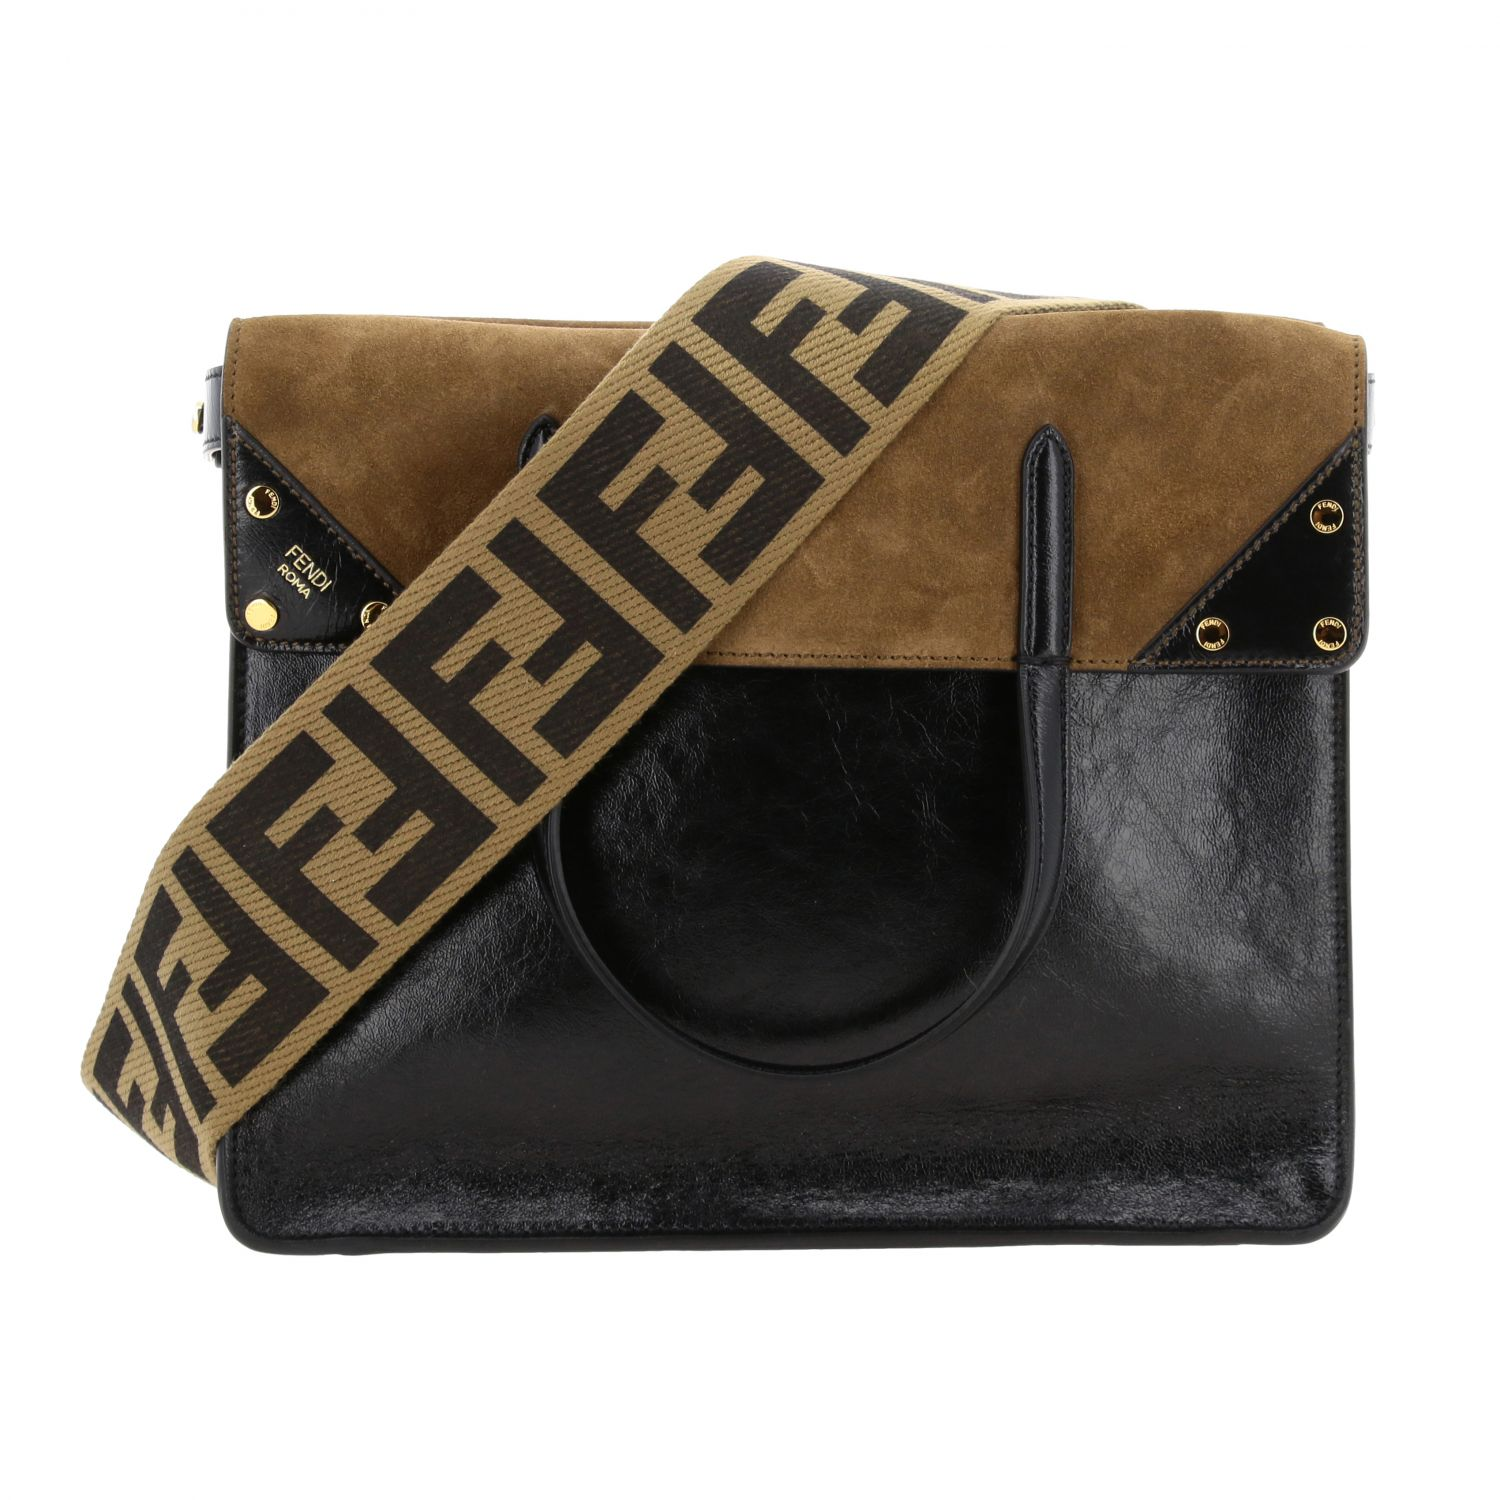 Shoulder bag women Fendi black 4